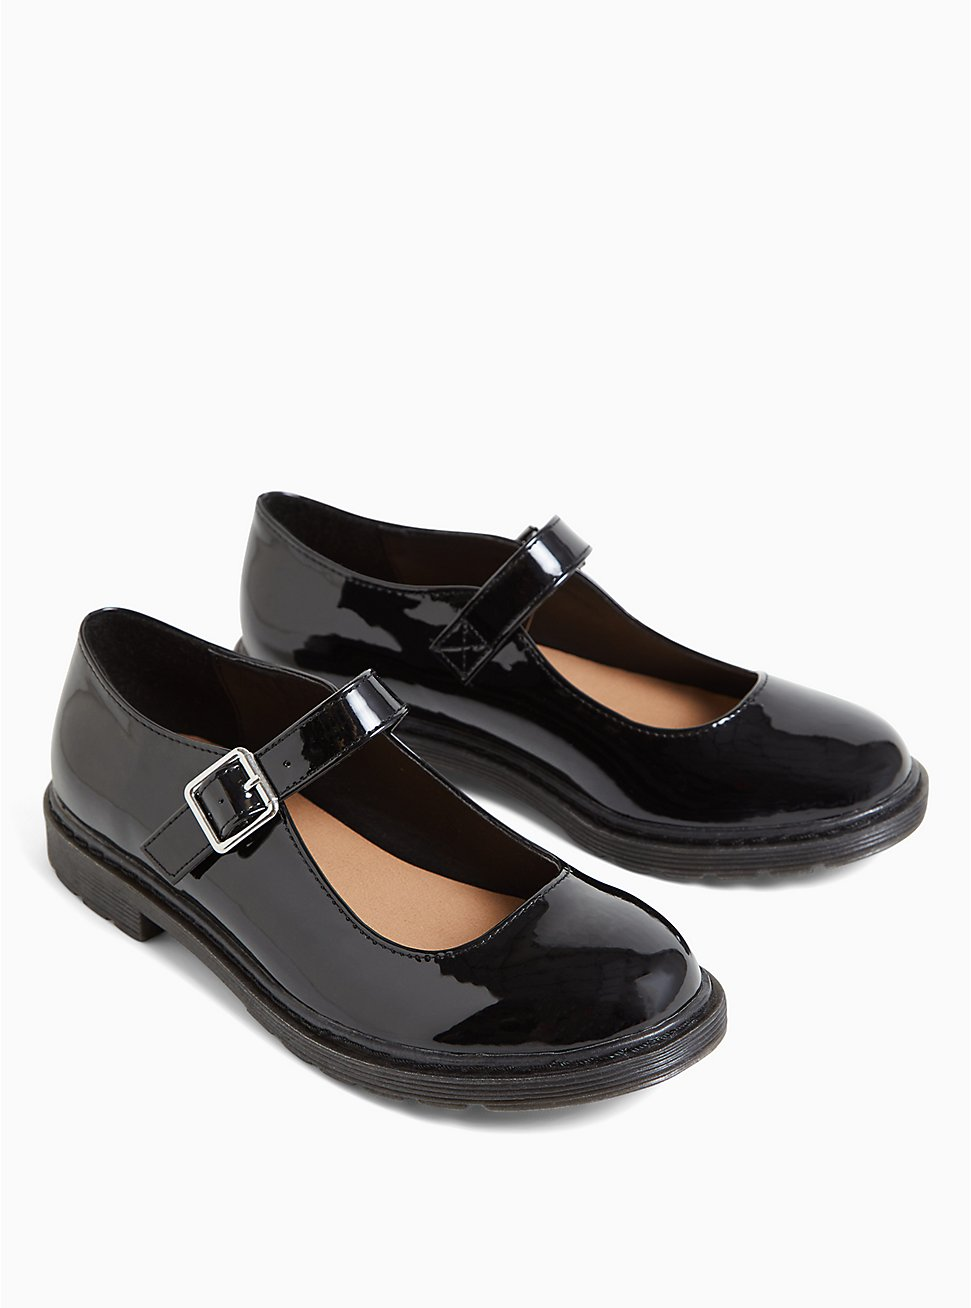 Black Faux Leather Mary Jane Oxford Flat (WW), BLACK, hi-res